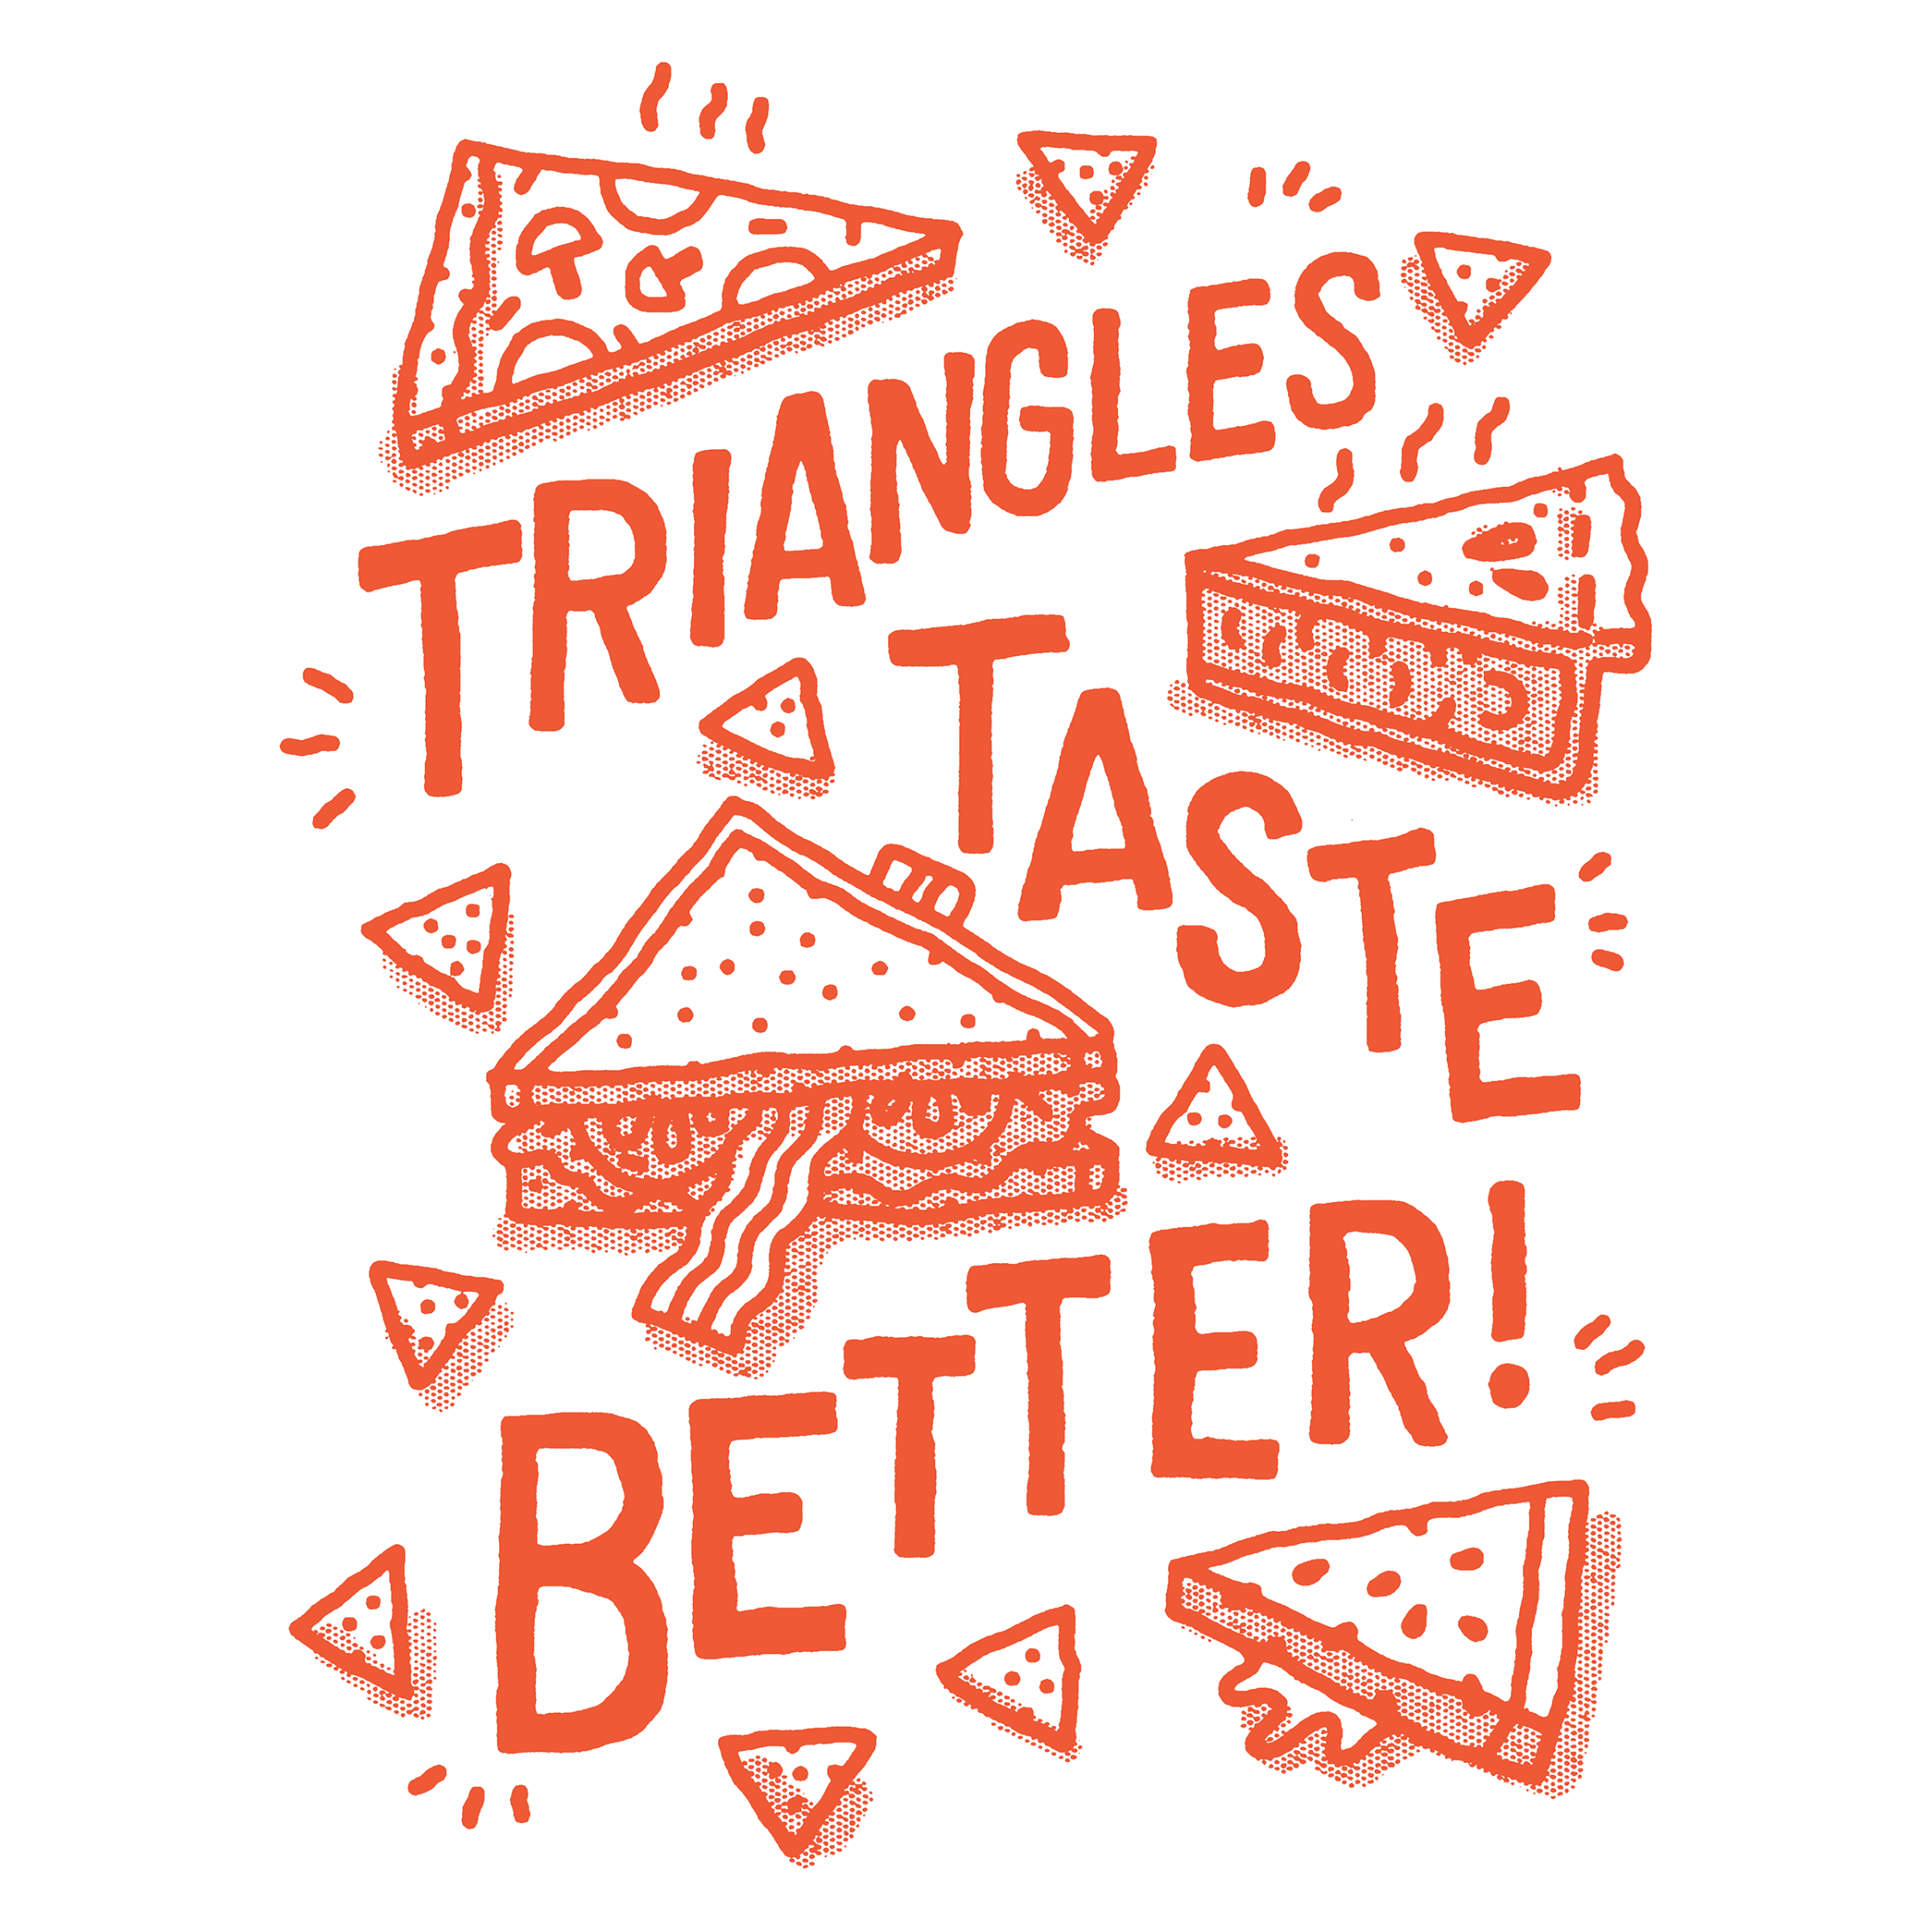 Triangles Taste Better, benefiting La Cocina SF